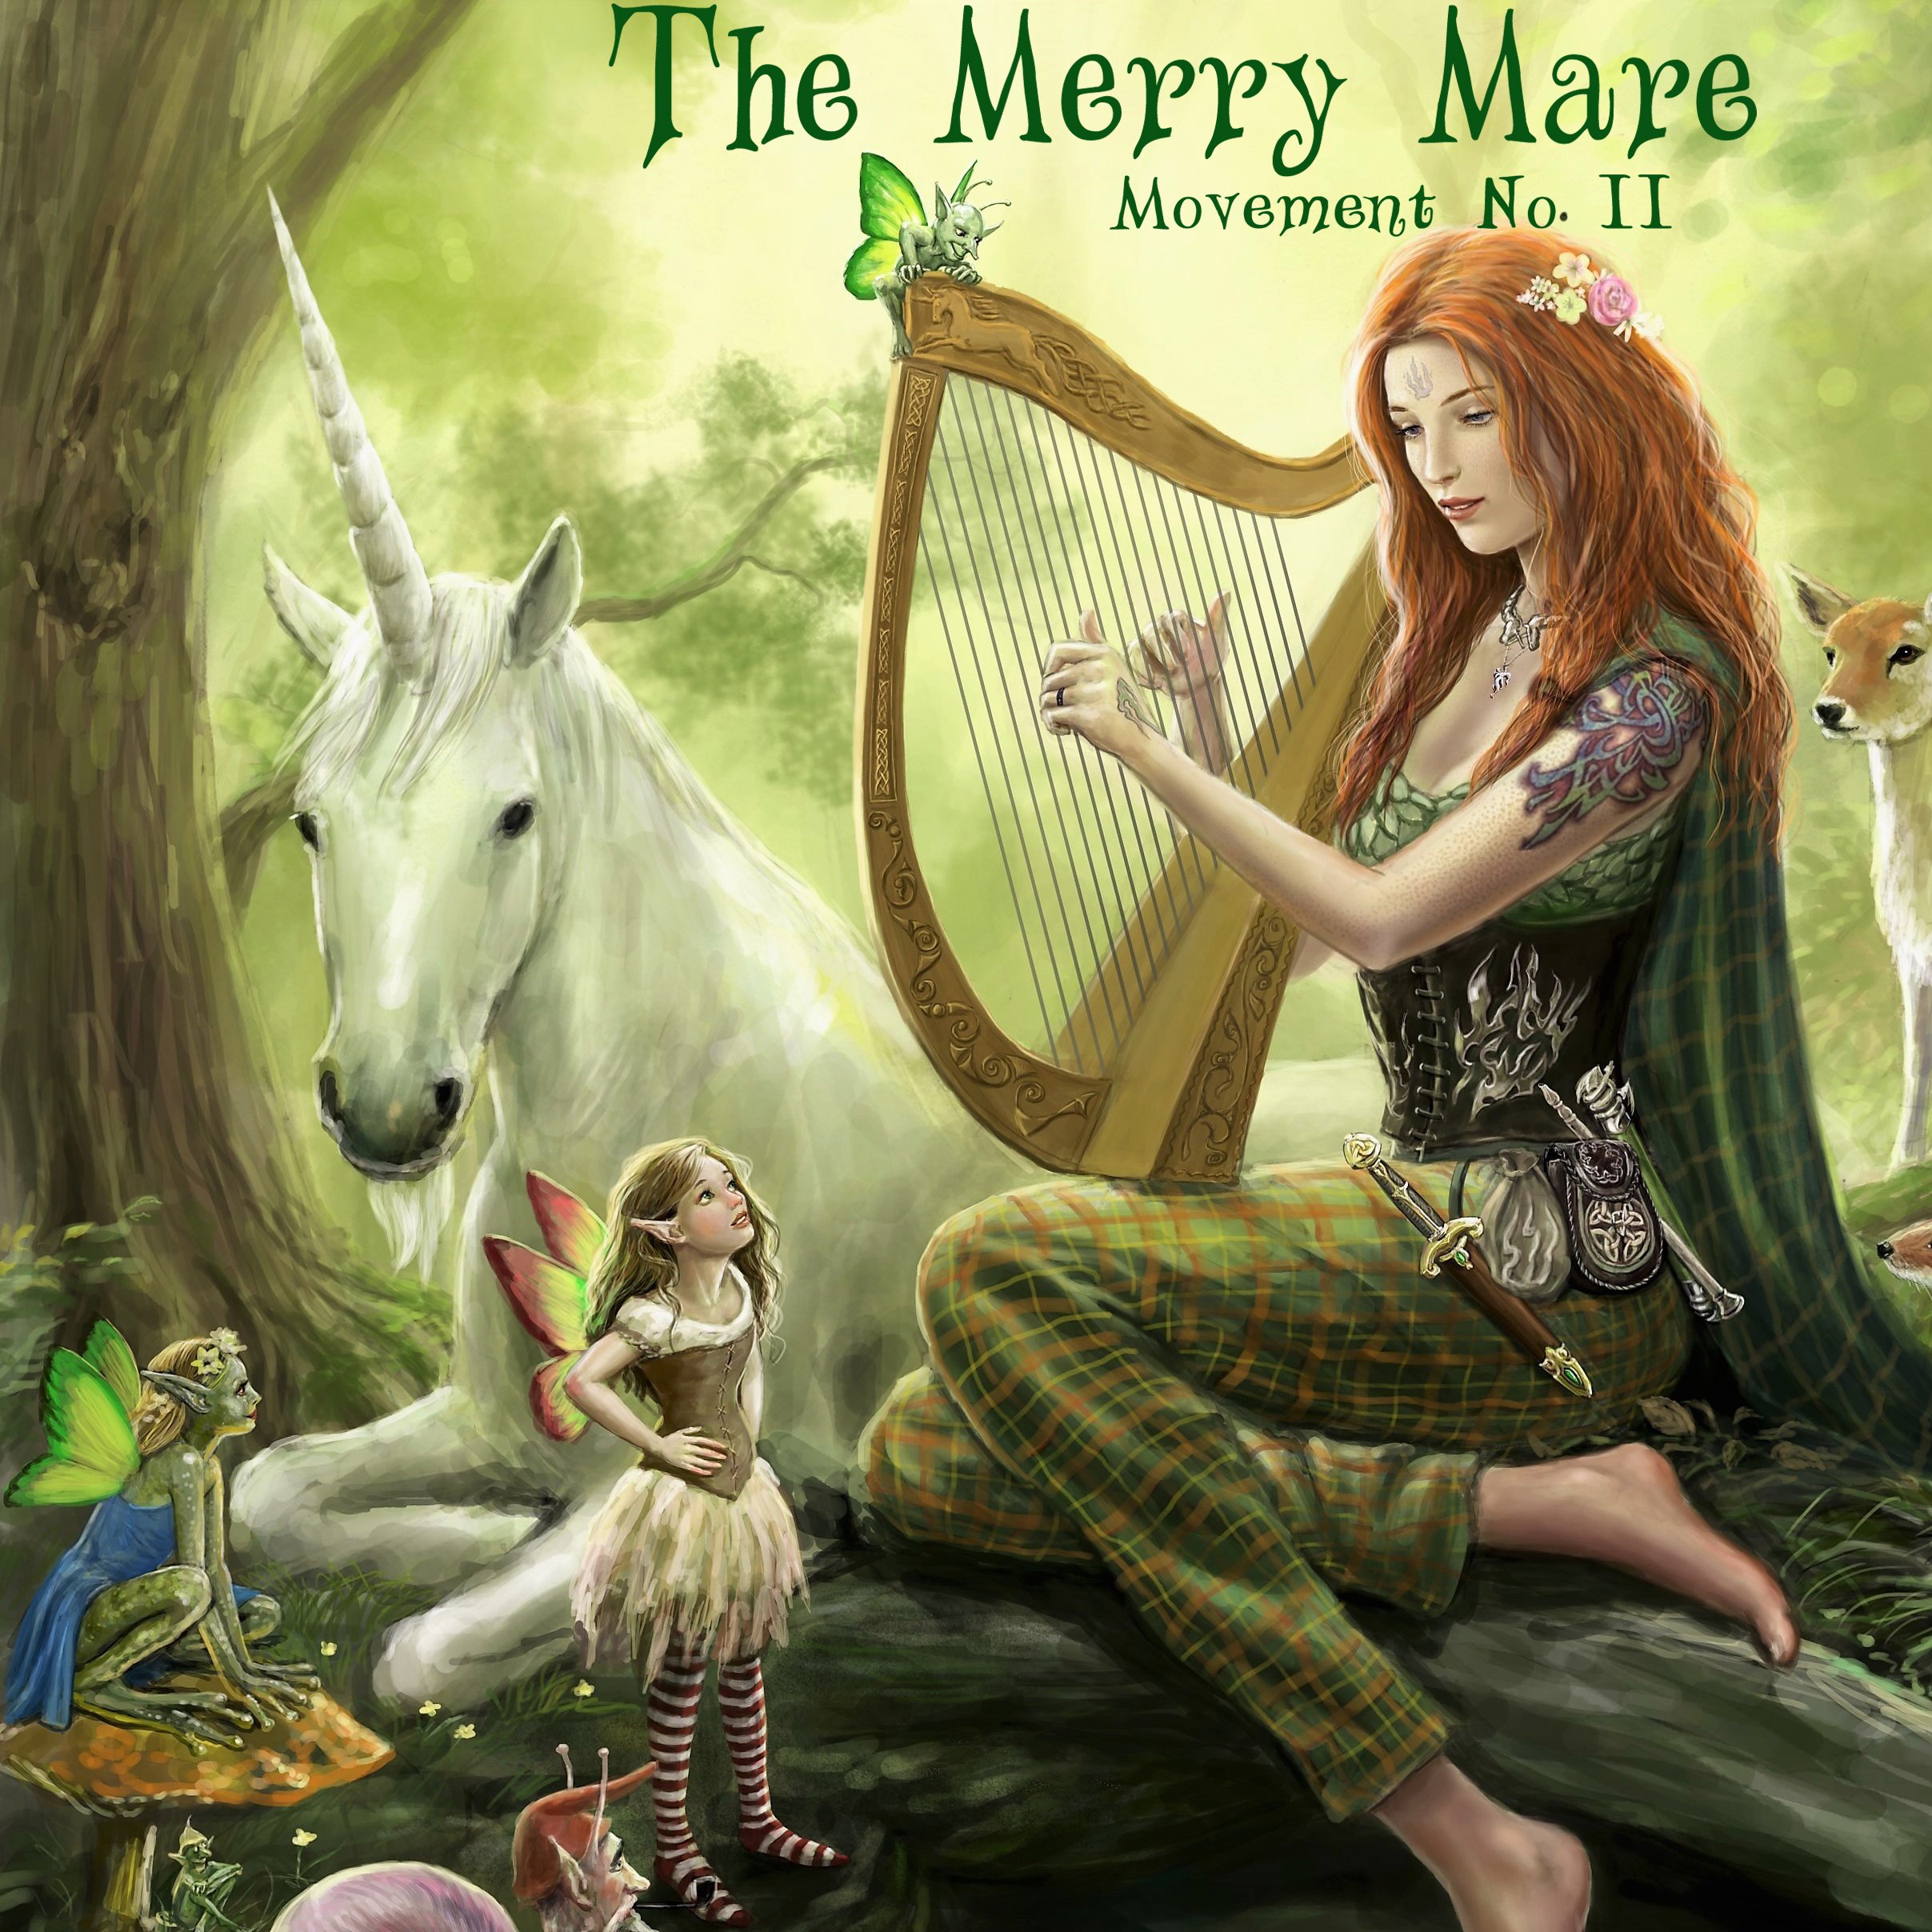 The Merry Mare